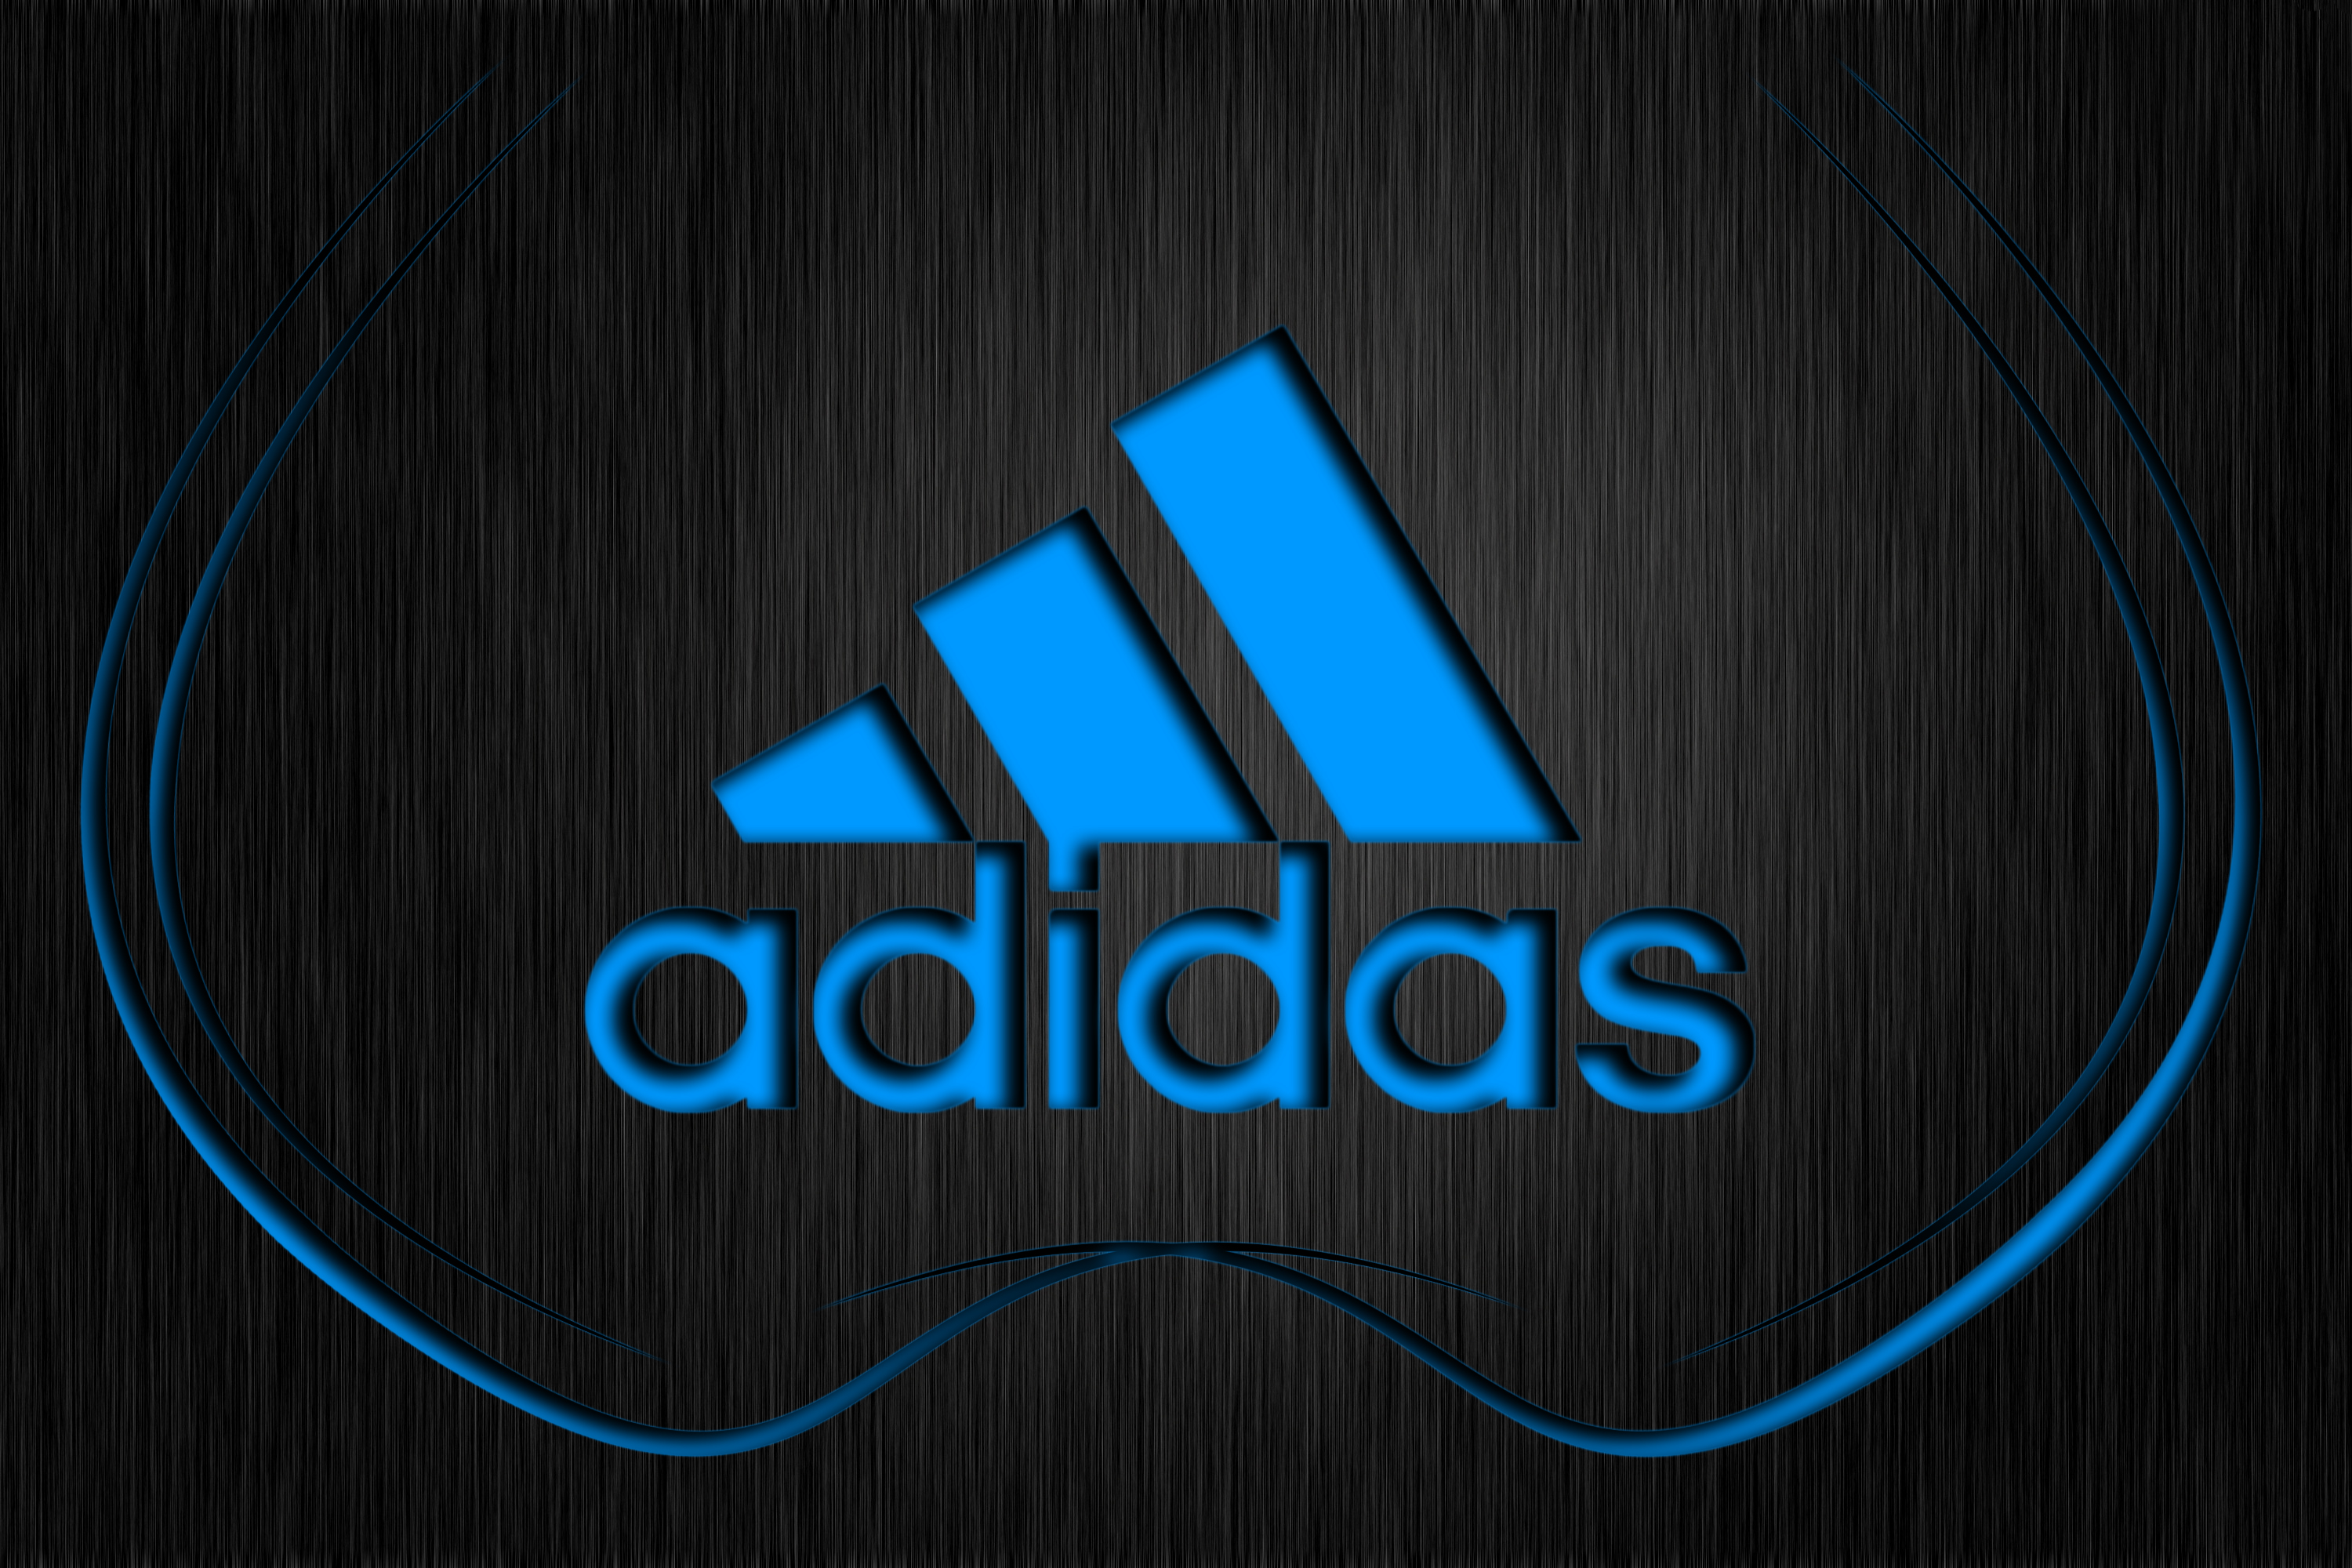 Adidas Wallpaper HD ImageBankbiz 3000x2000